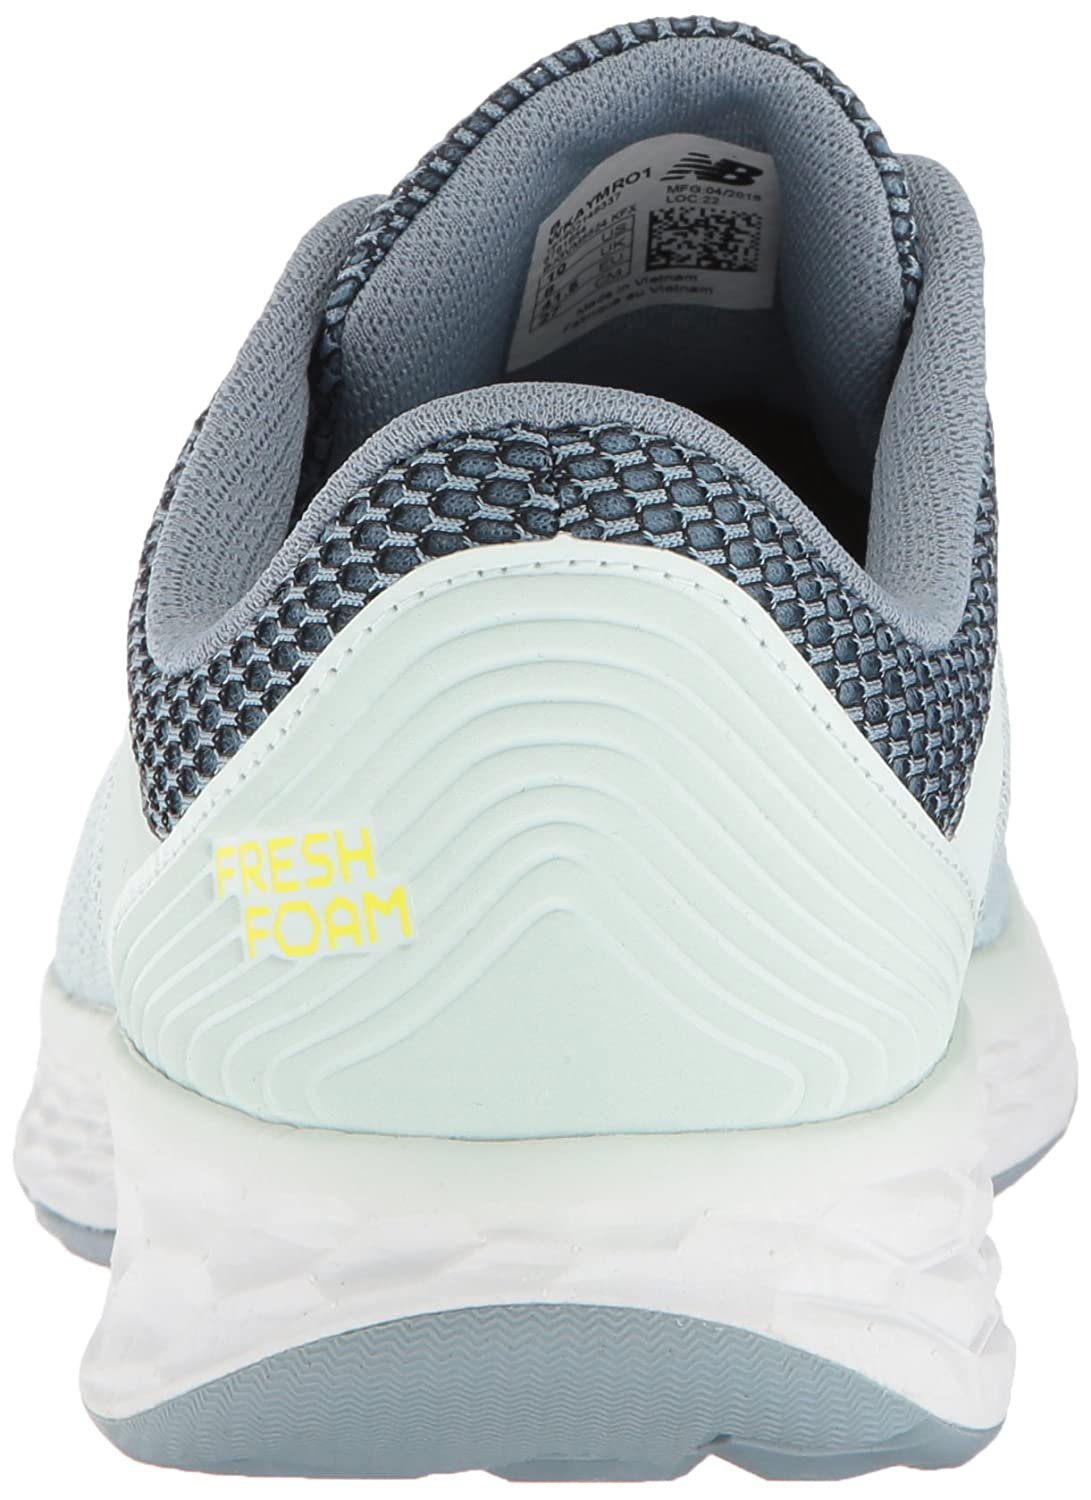 New Balance Women's Kaymin Trail v1 Fresh Foam Trail Running US|Ocean Shoe B075R7CFLC 5.5 B(M) US|Ocean Running Air 10230b